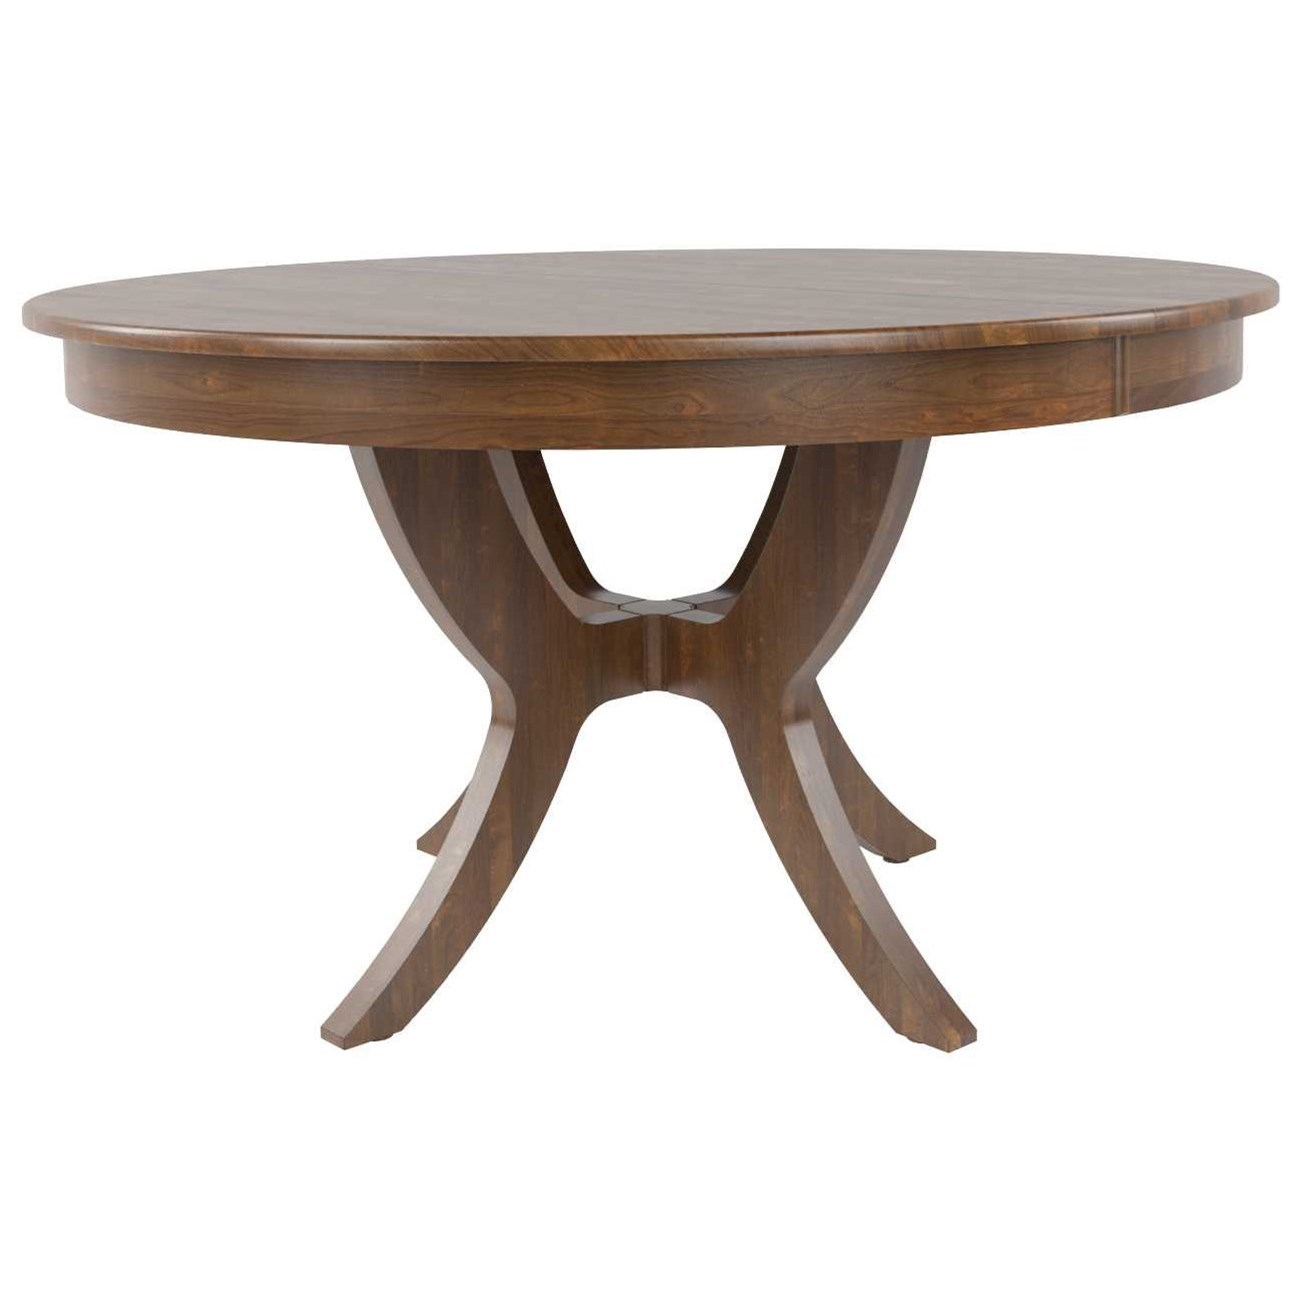 Core - Custom Dining Customizable Round Dining Table by Canadel at Dinette Depot